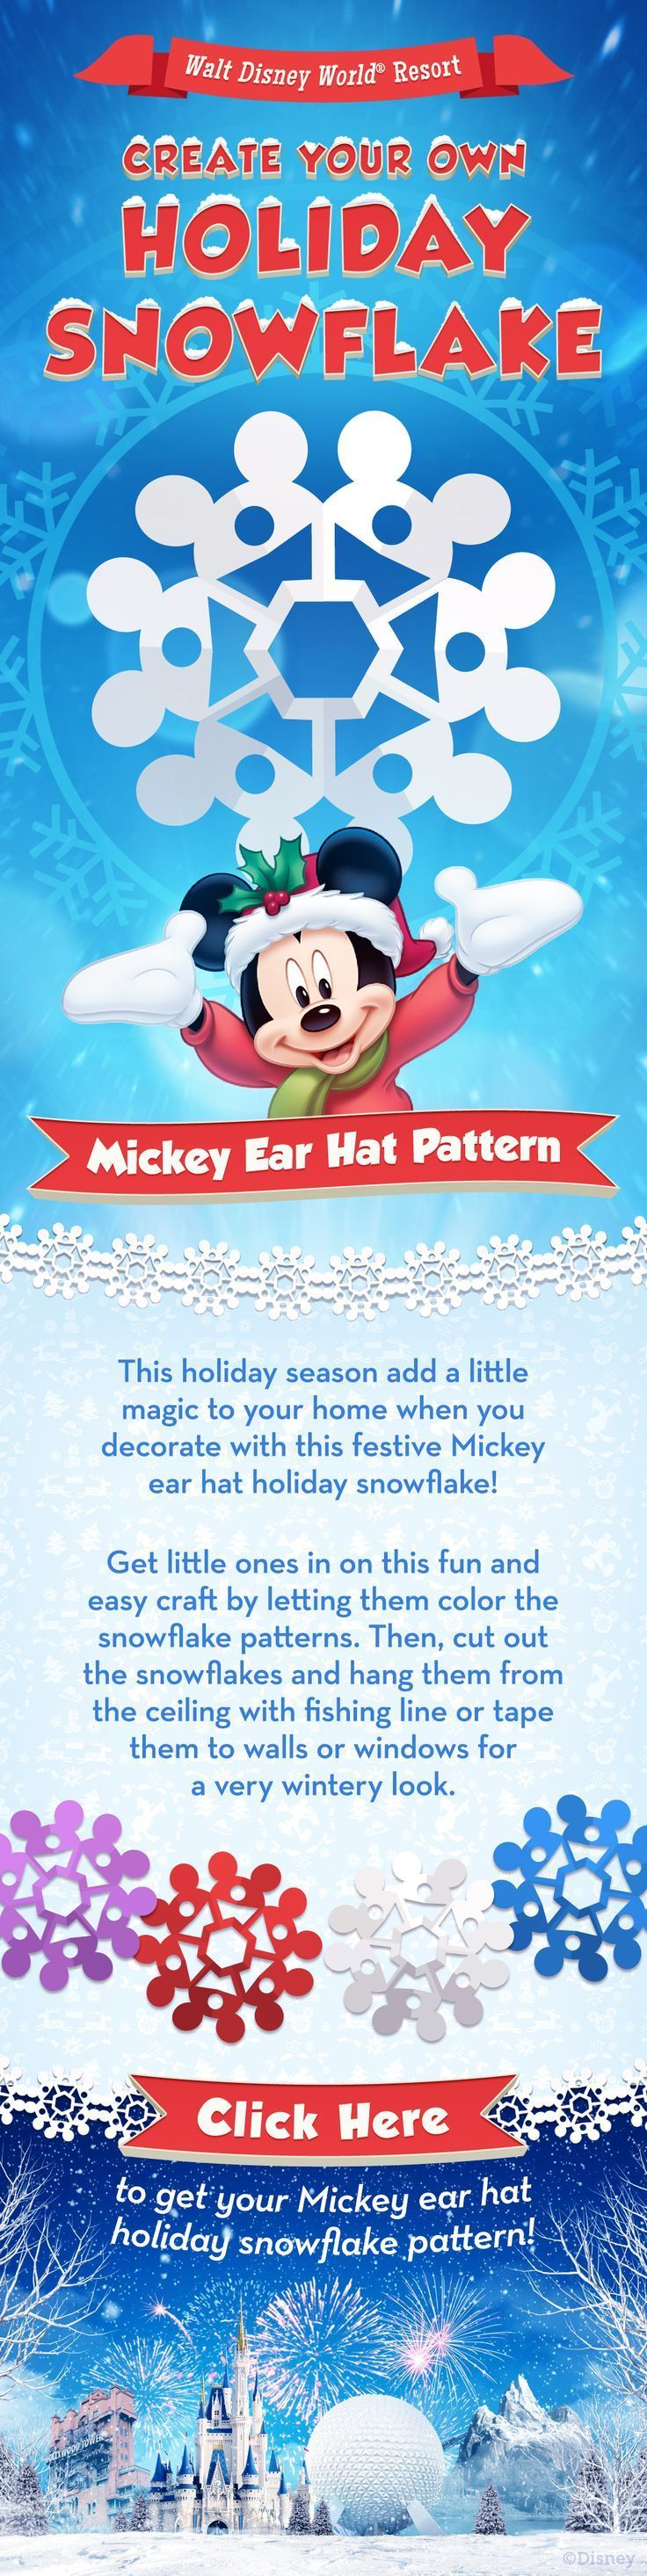 Create a fun Mickey Ear Hat pattern snowflake! | Disney Christmas Crafts | Disney Christmas DIY |